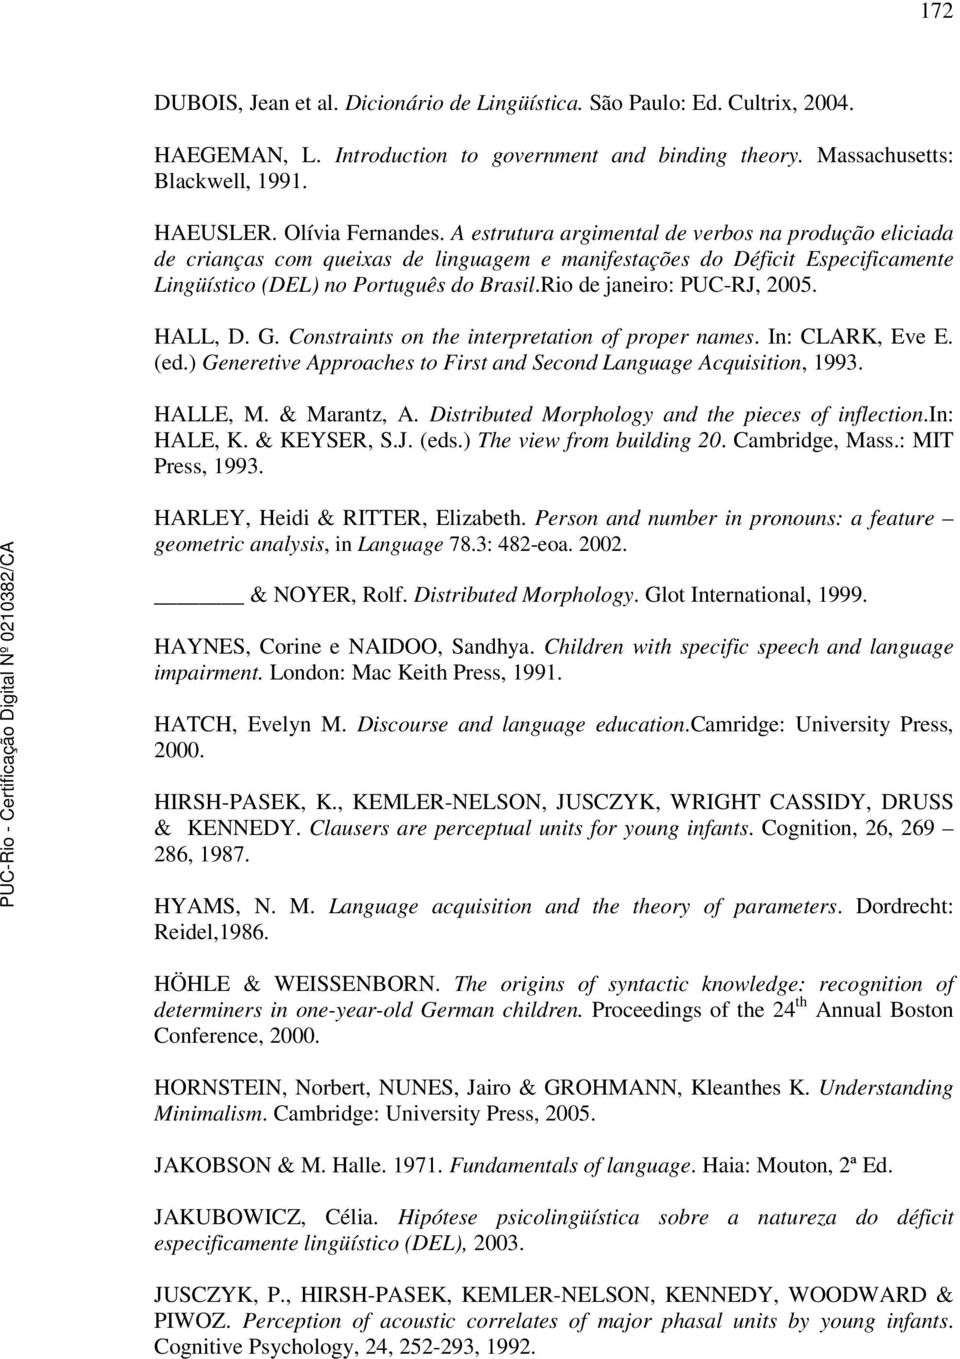 Rio de janeiro: PUC-RJ, 2005. HALL, D. G. Constraints on the interpretation of proper names. In: CLARK, Eve E. (ed.) Generetive Approaches to First and Second Language Acquisition, 1993. HALLE, M.